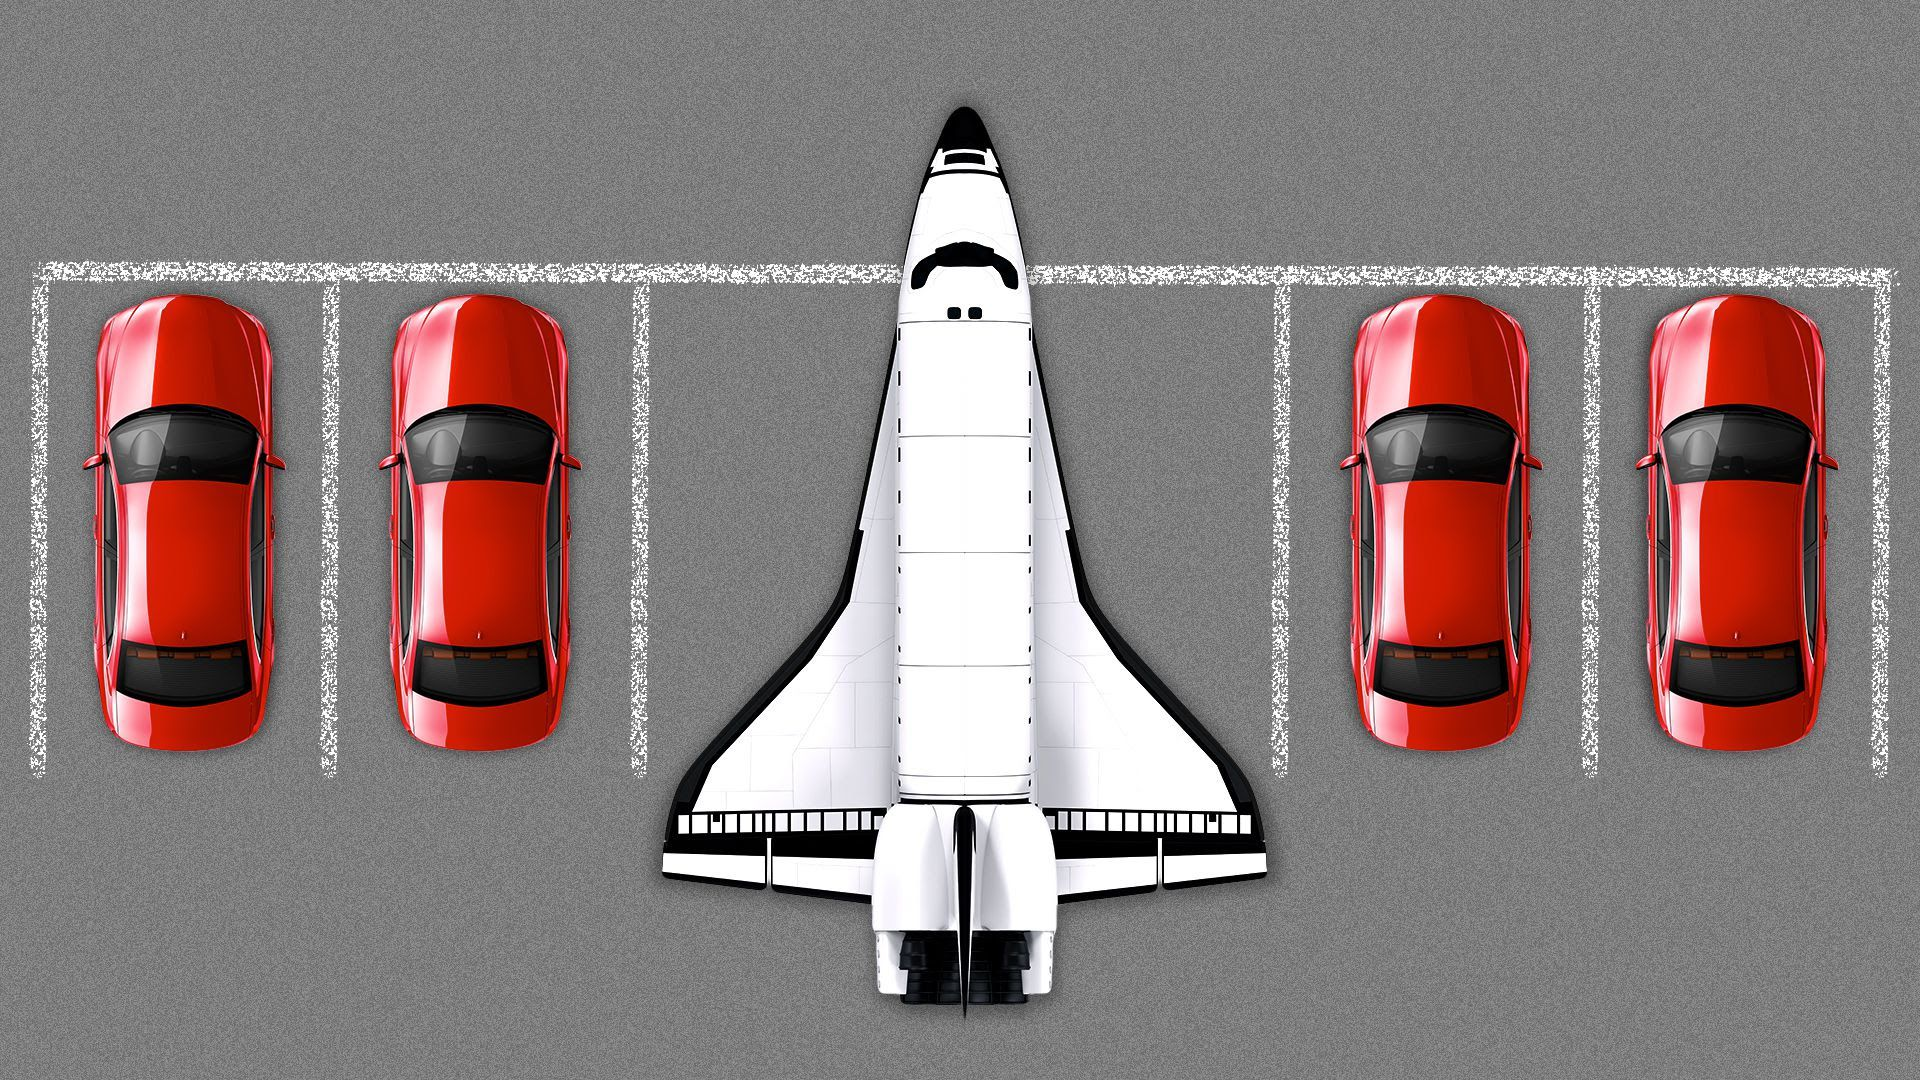 Illustration of spaceship parked next to cars